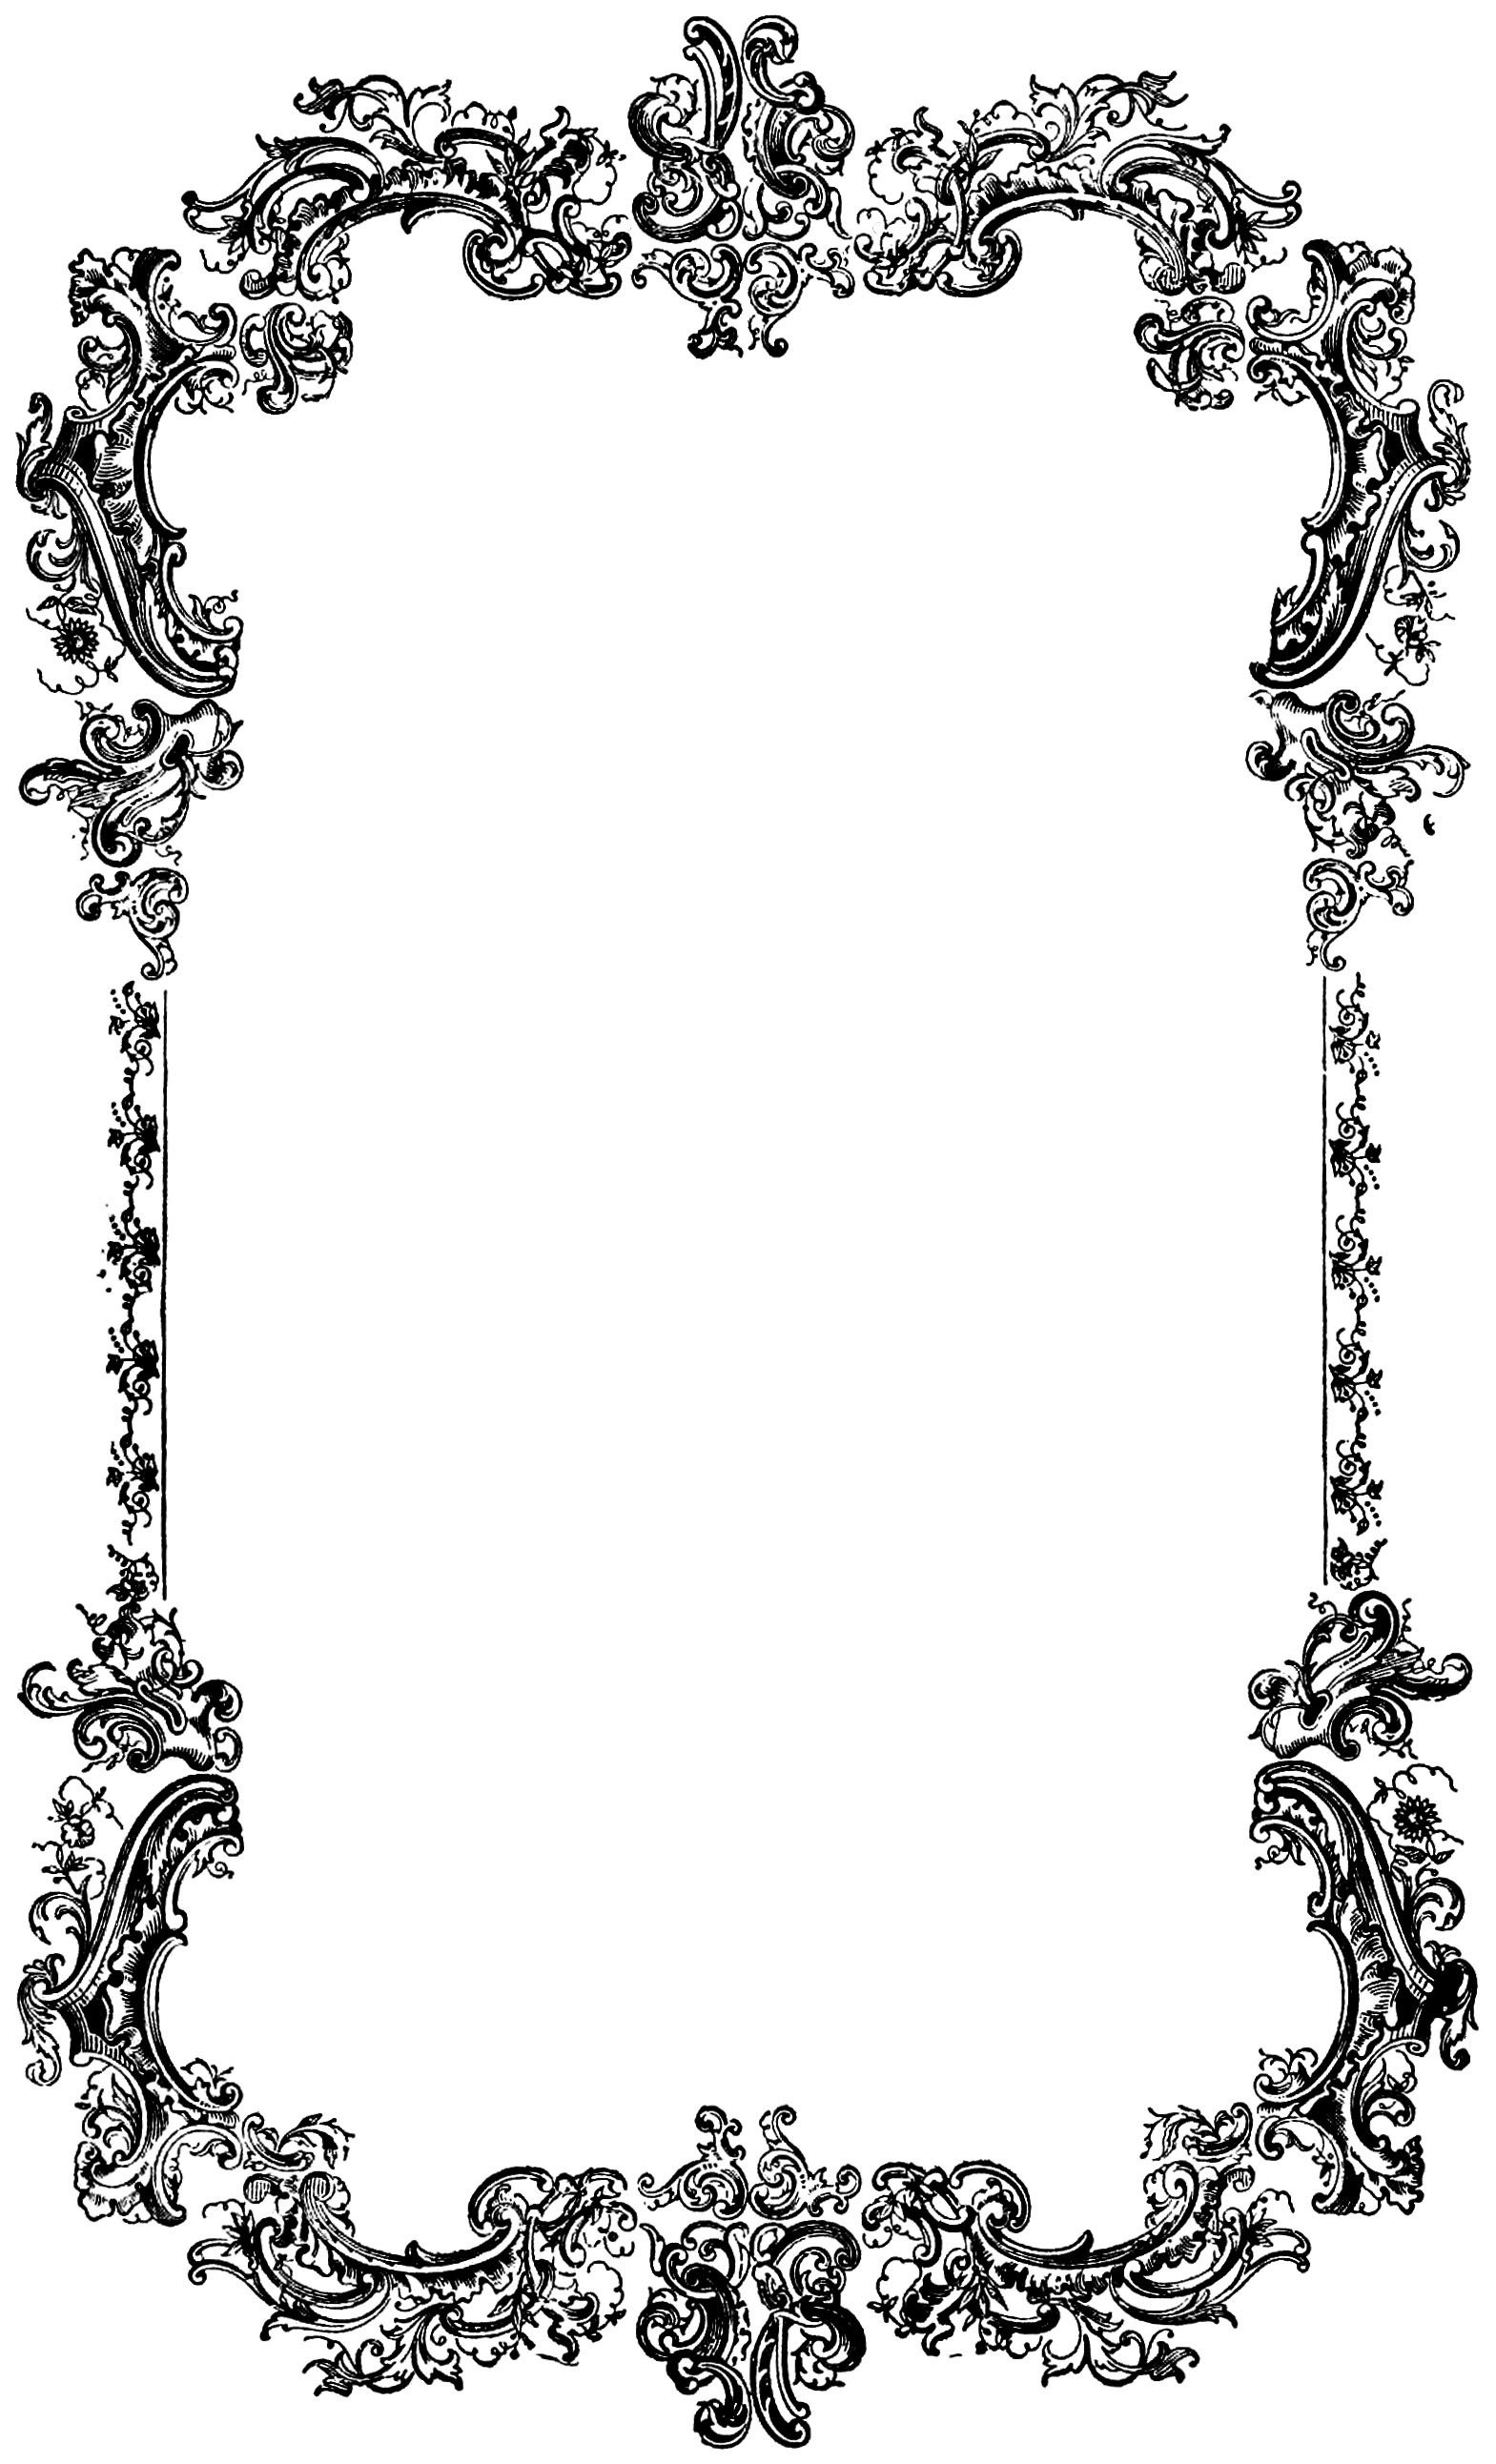 Antique frame borders clipart vector library stock Download Free png Antique Frame Border Png. Vintage Border Frame ... vector library stock